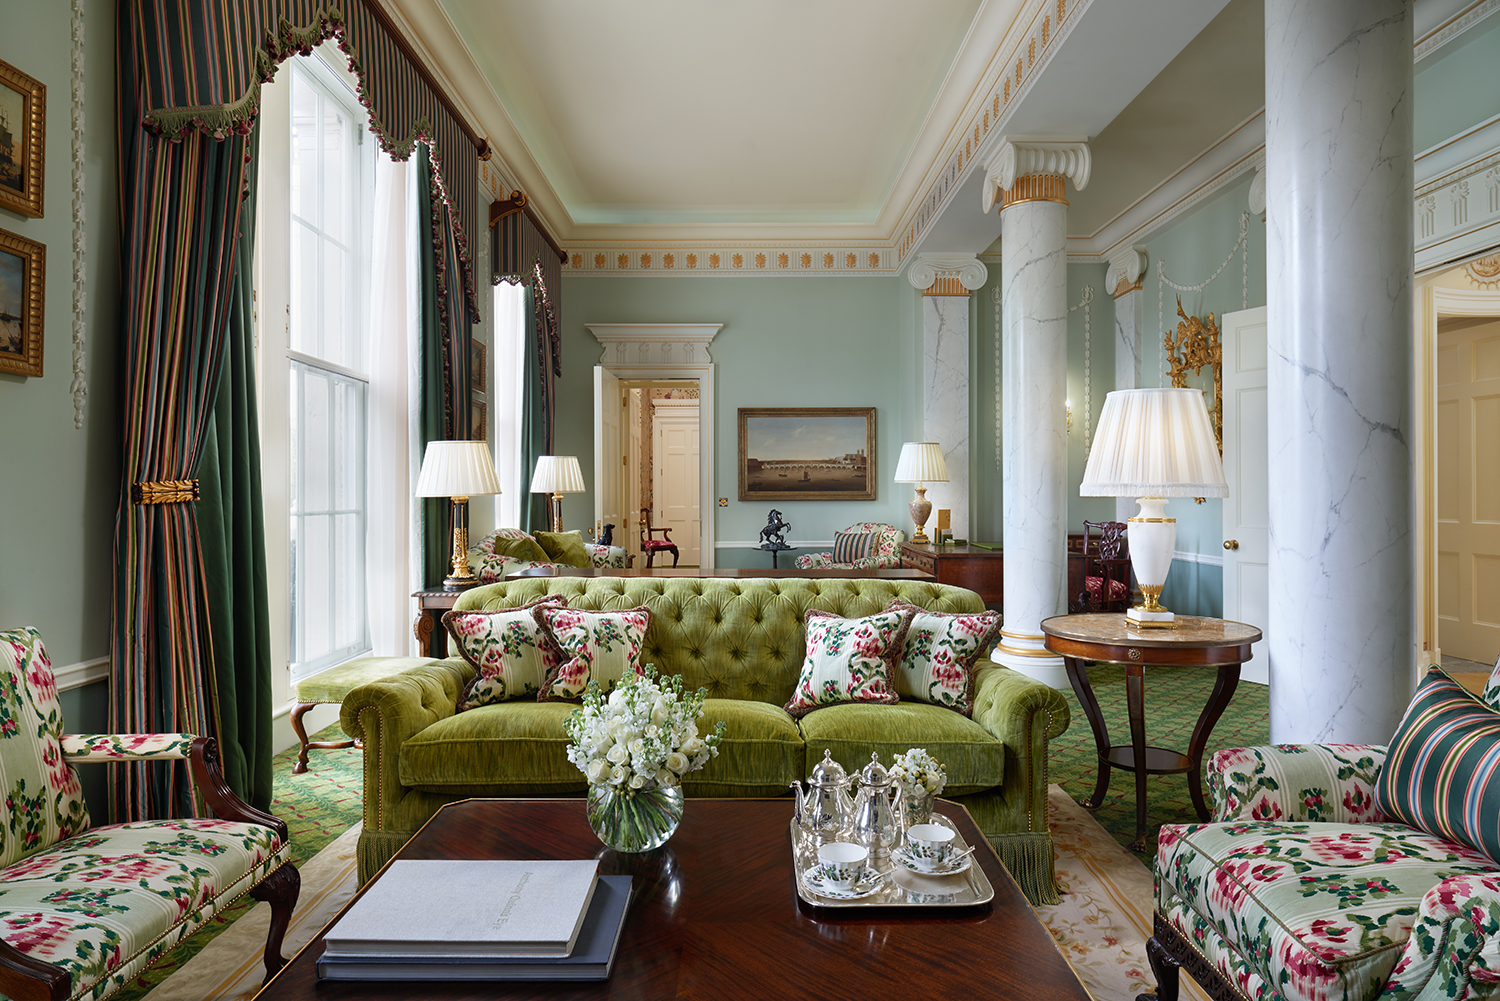 The-Lanesborough-Suite-Living-Room-2_9356.jpg